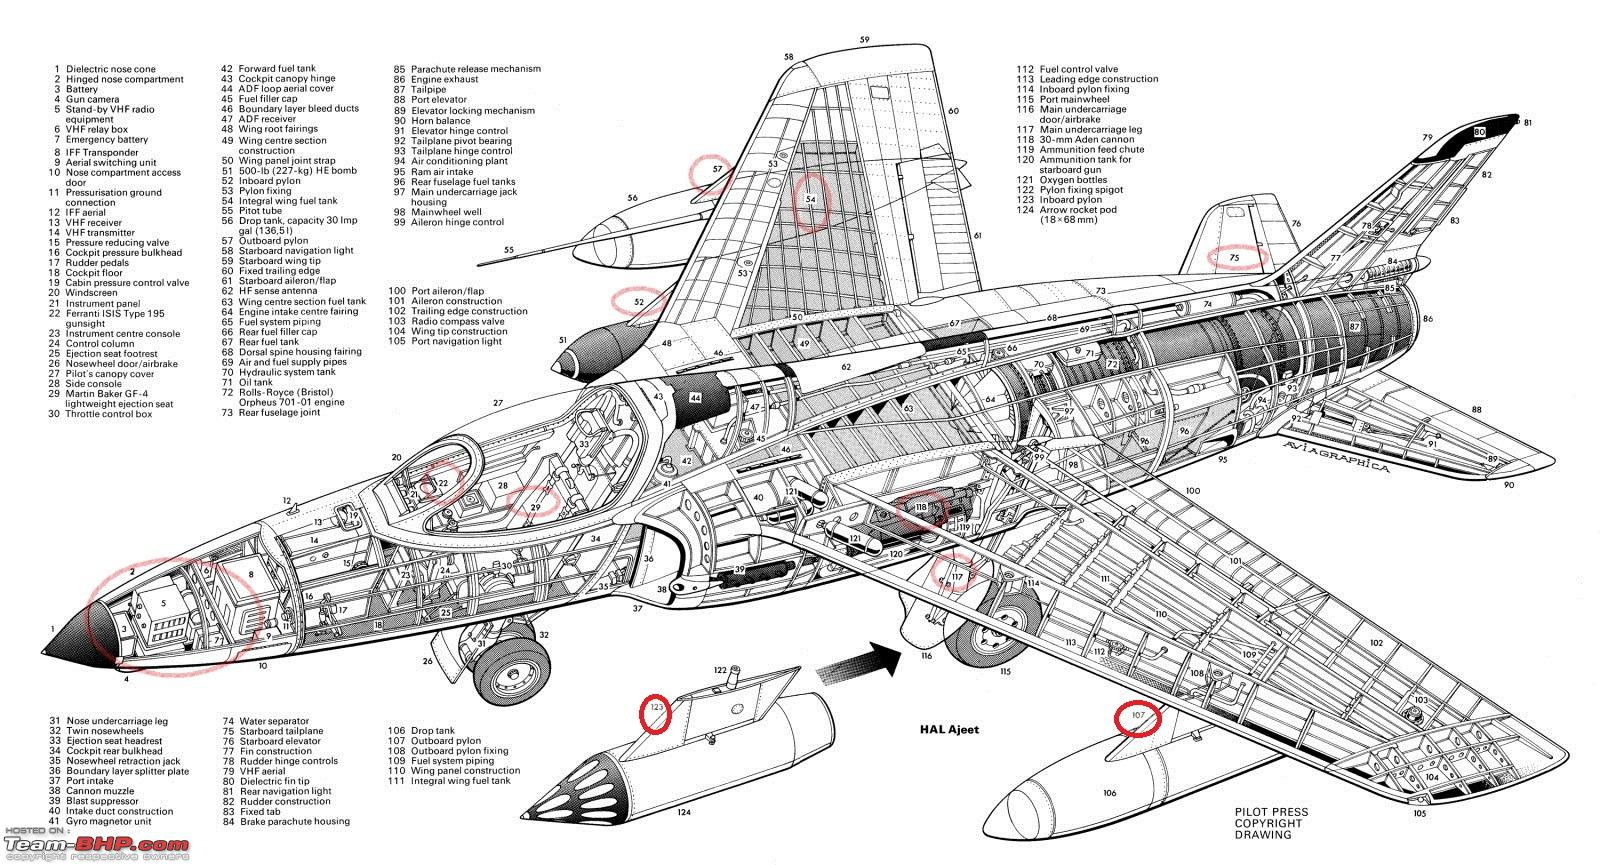 Military Aircrafts: Designs and Concepts - Armenian Forum